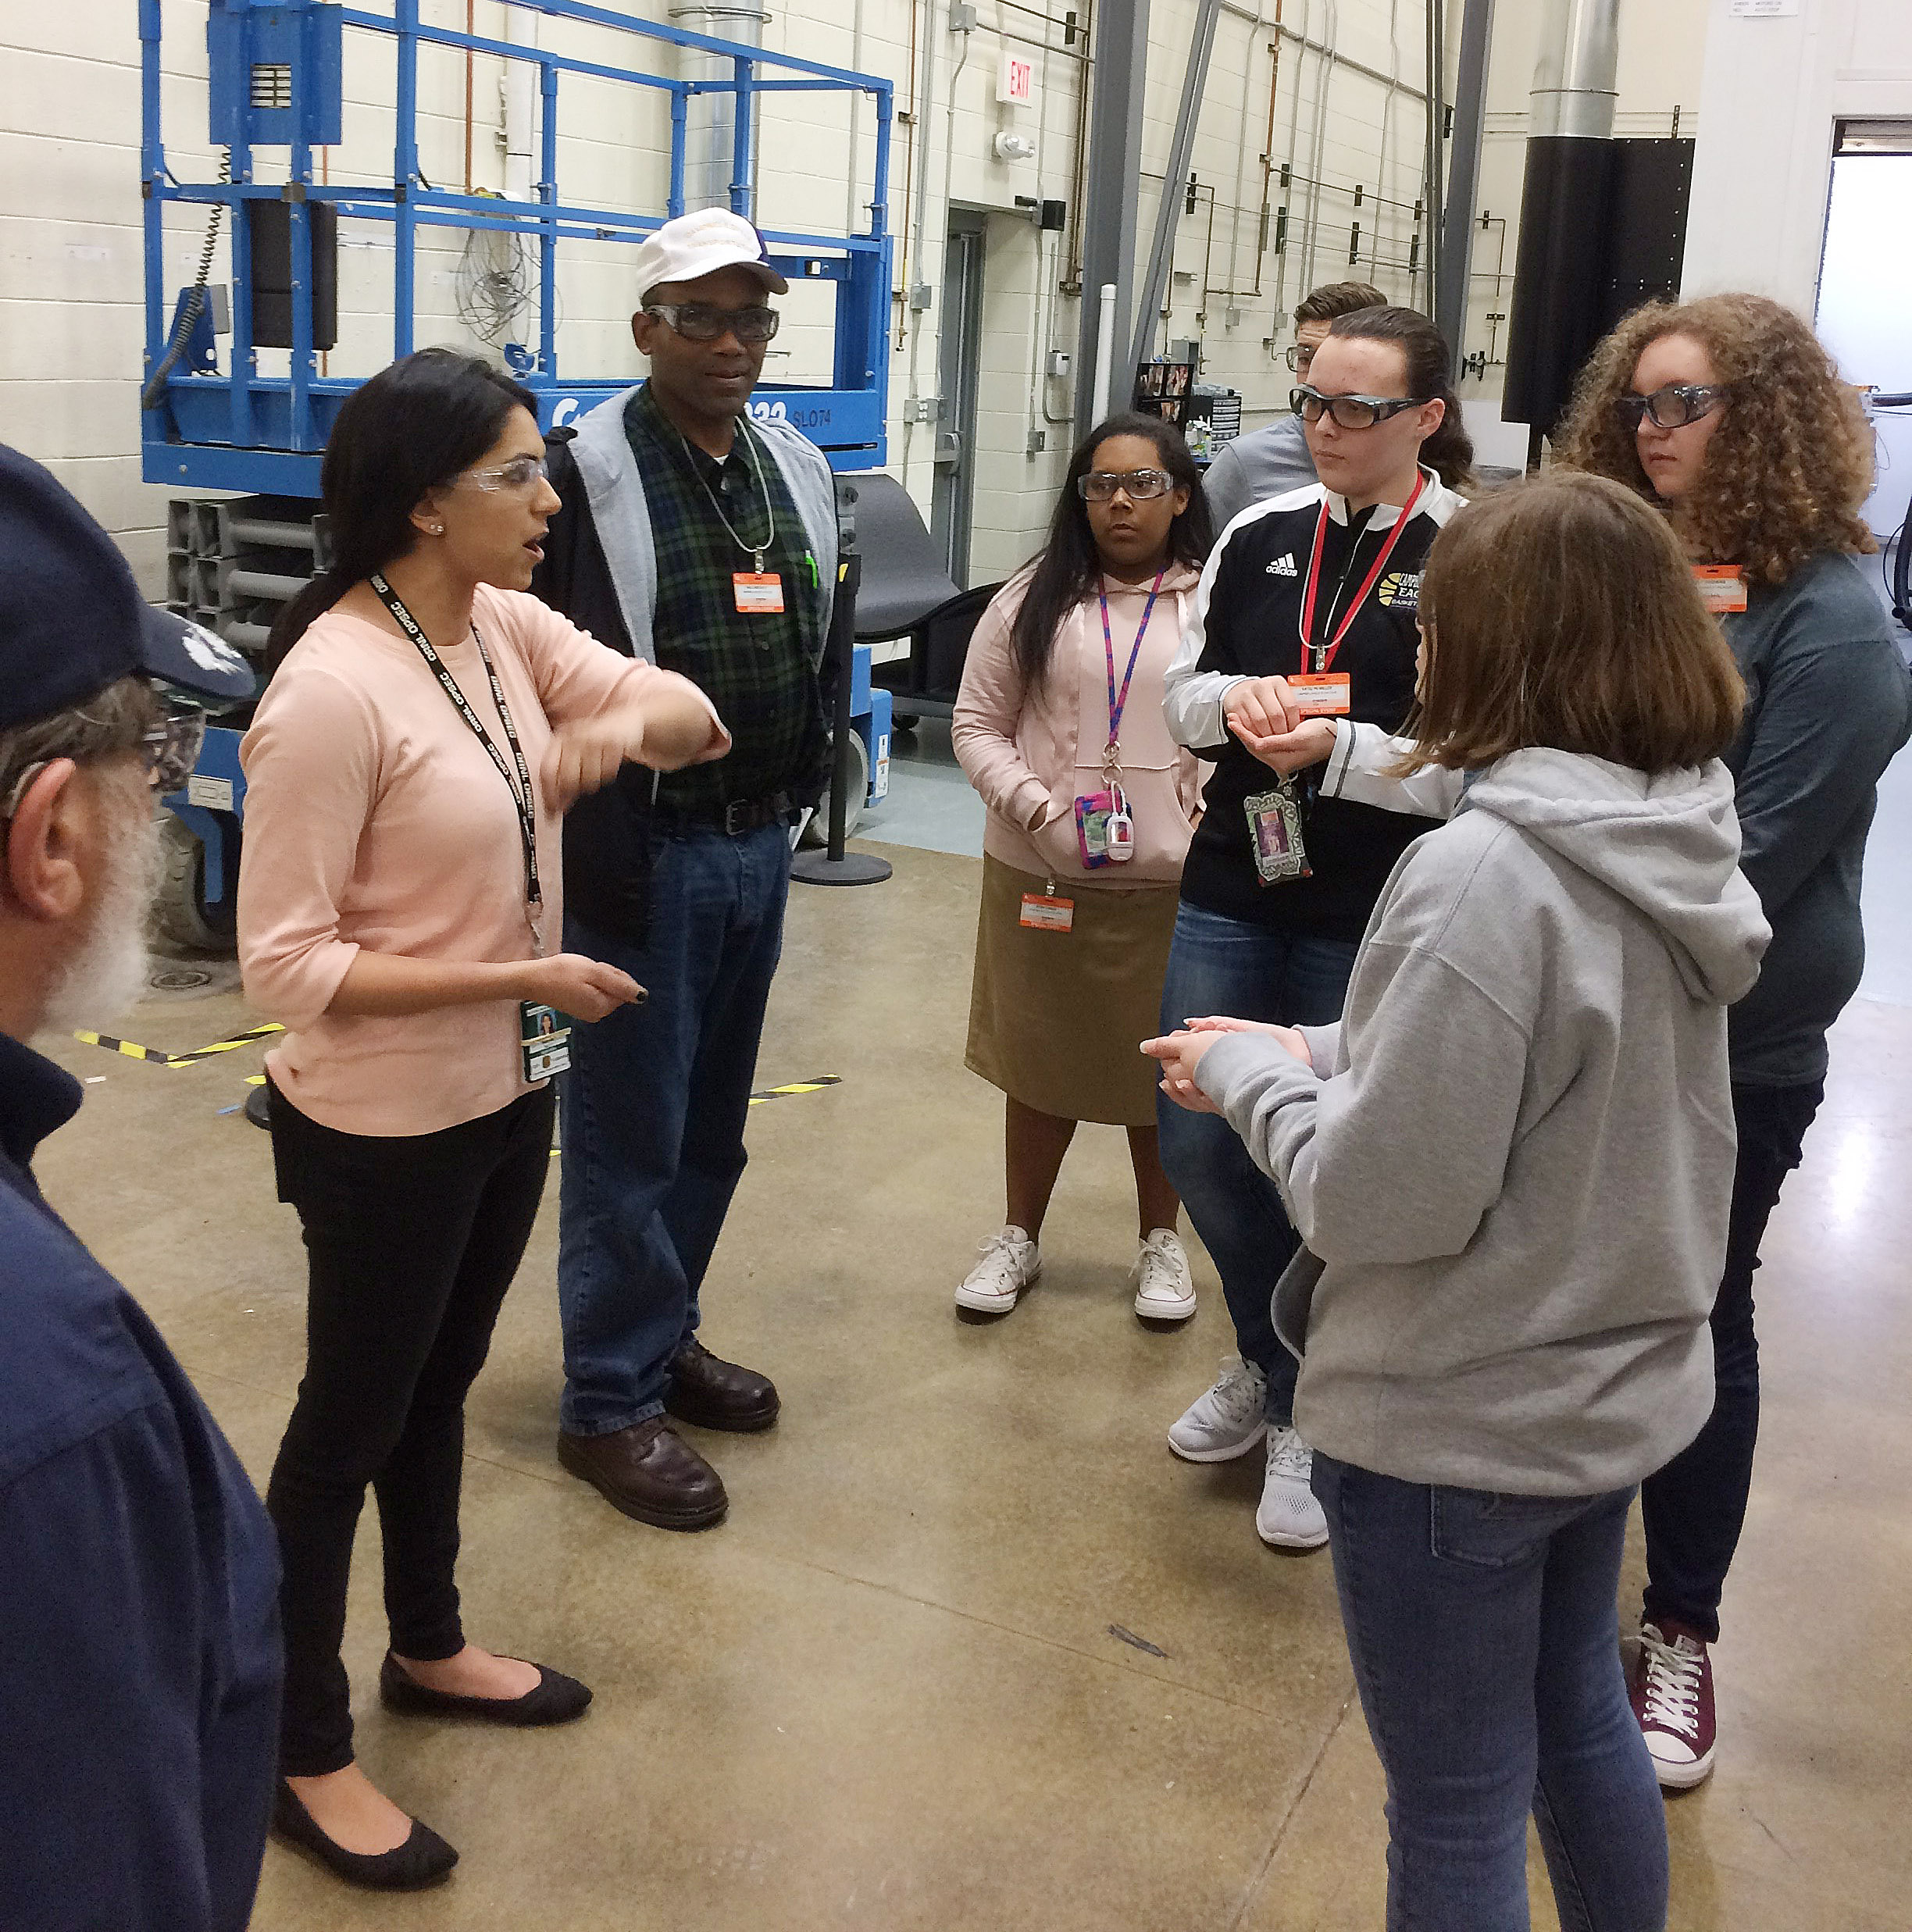 Campbellsville High School students recently took a tour of the Oak Ridge National Laboratory in Tennessee.